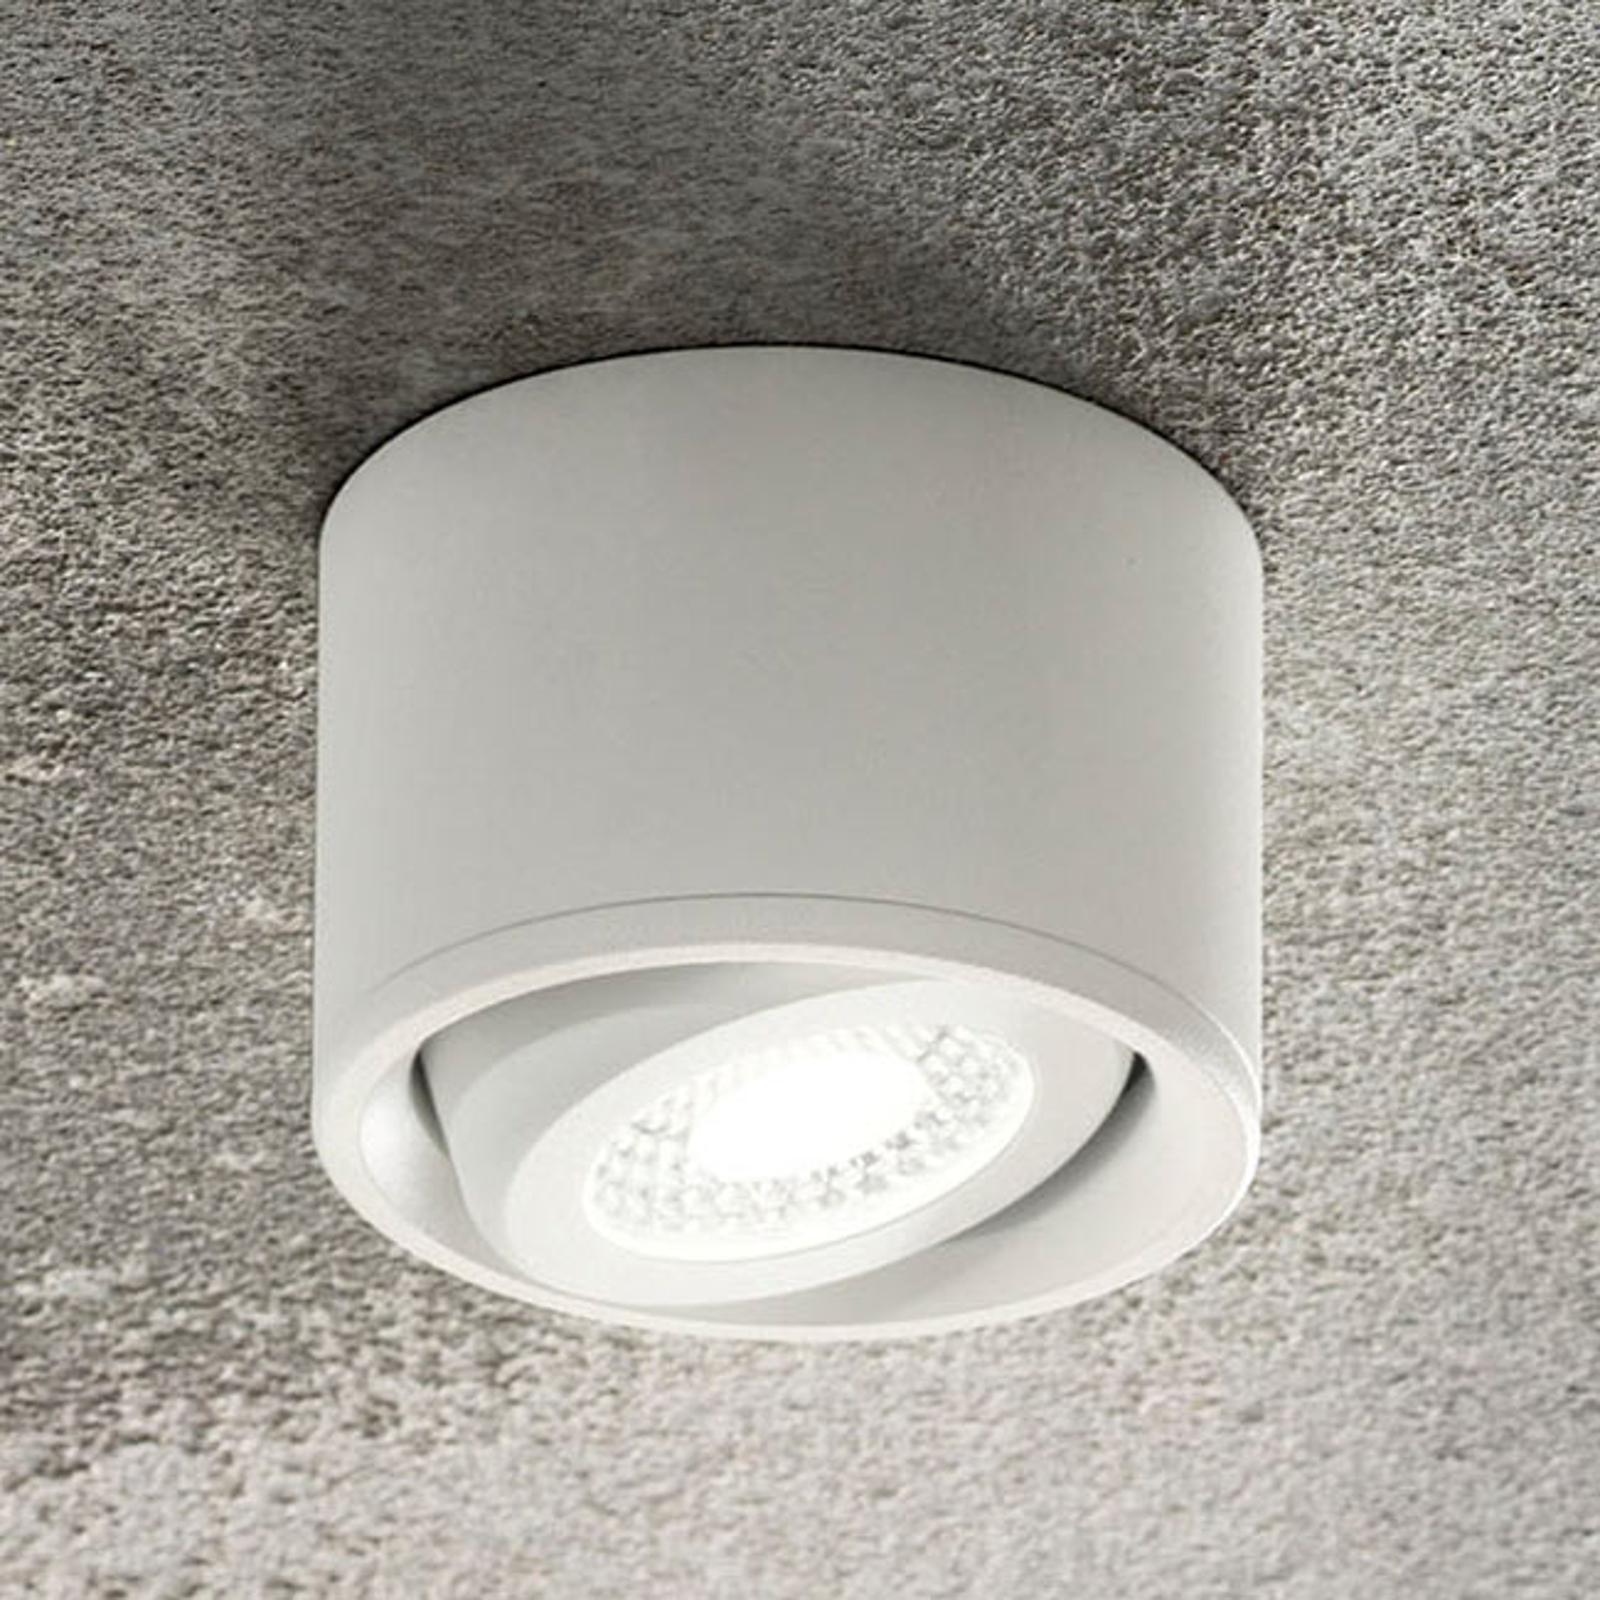 Acquista Downlight a LED Anzio con testa regolabile